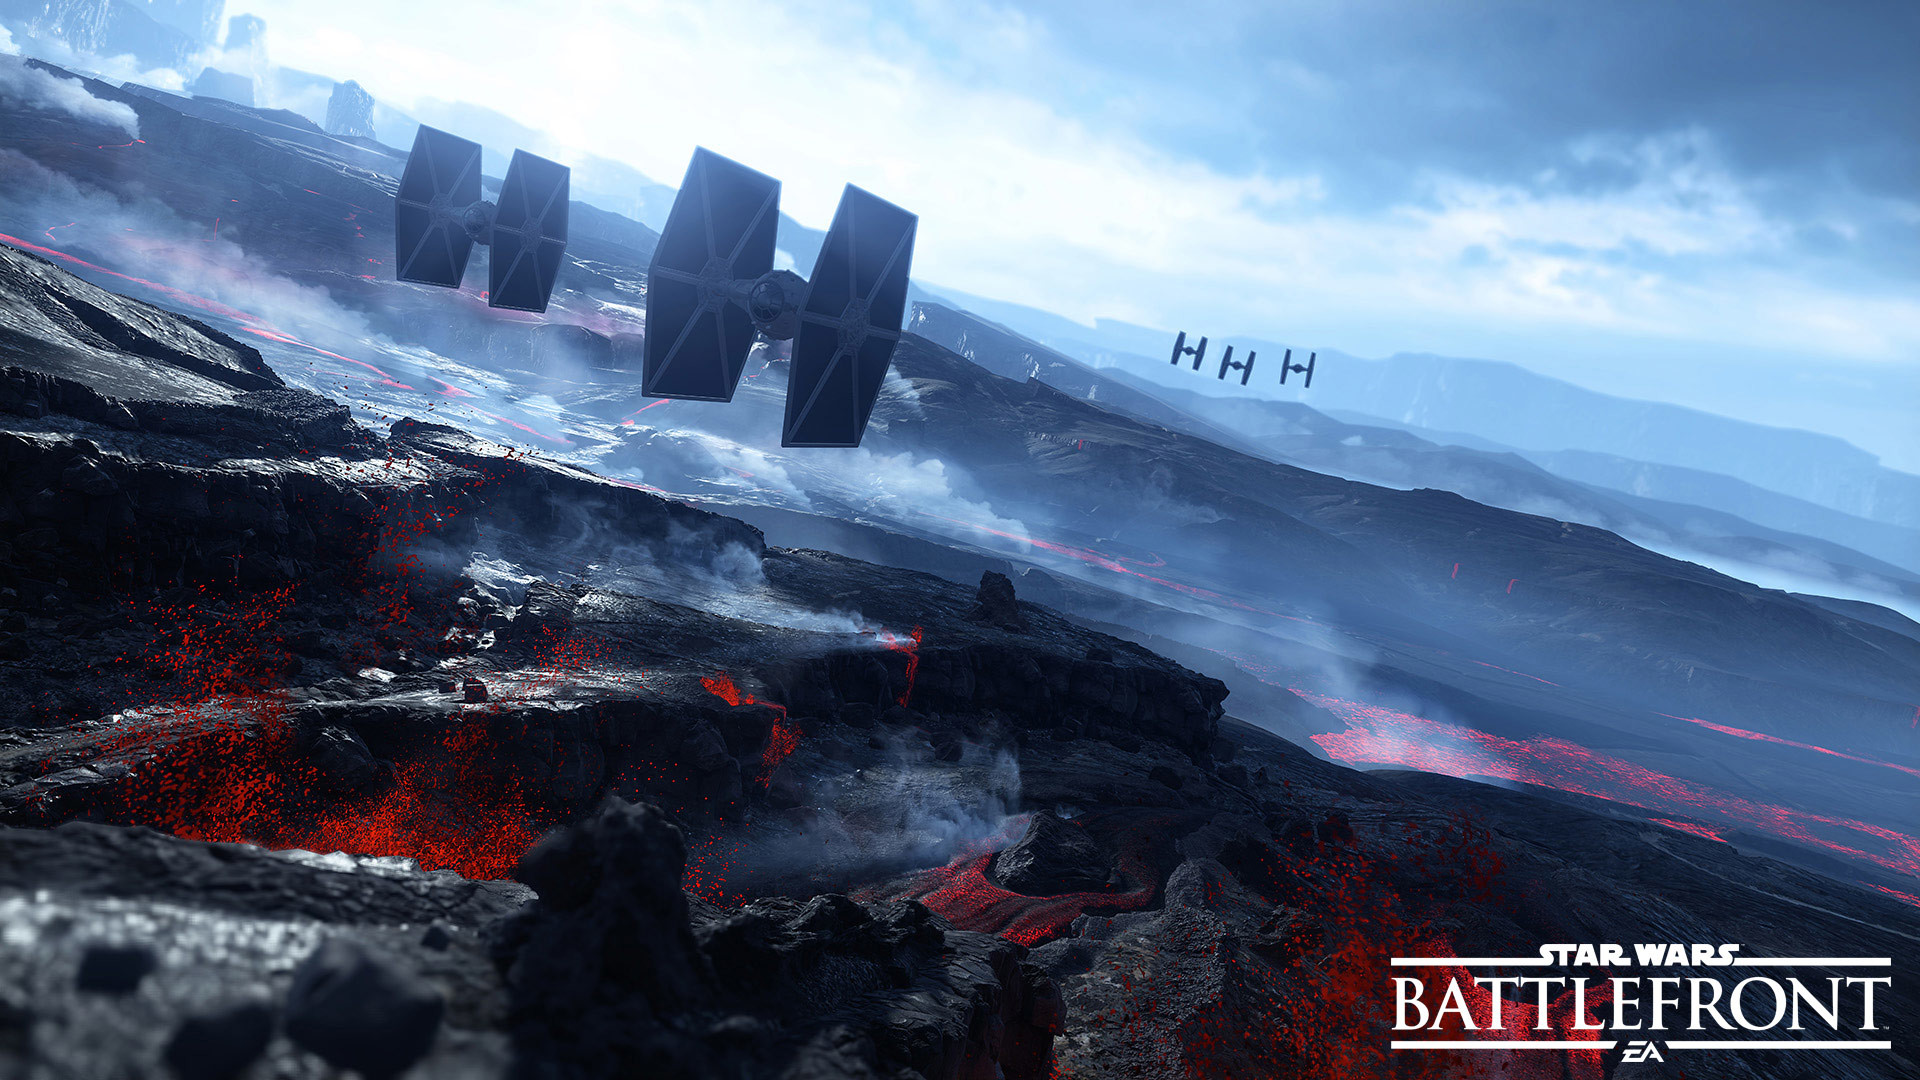 1920x1080 Star Wars™ Battlefront™ Wallpapers